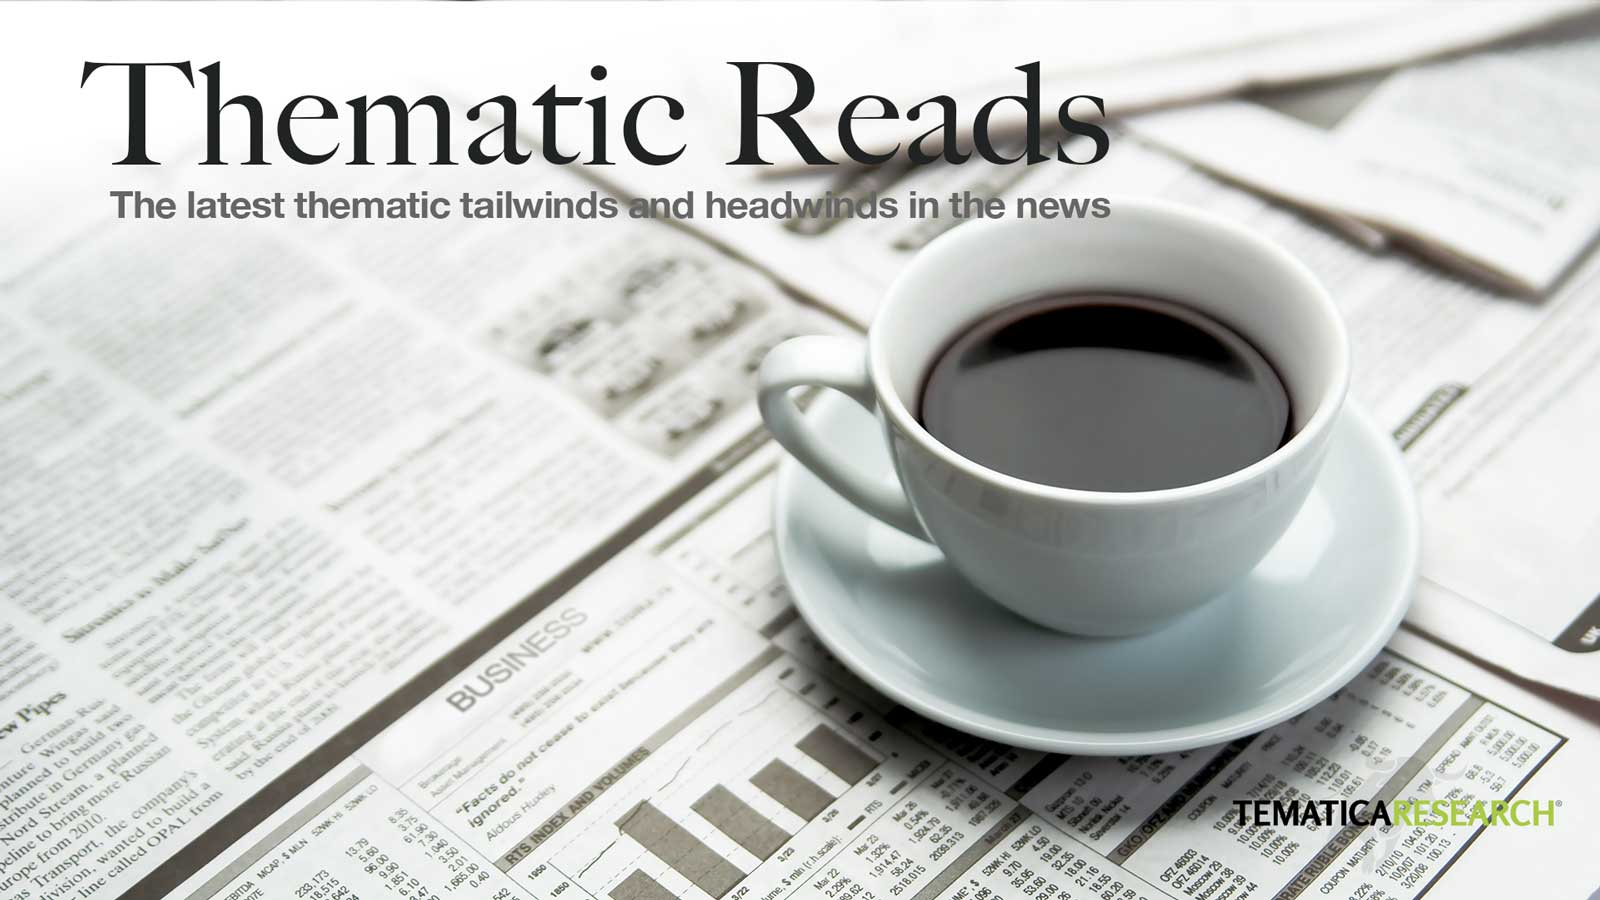 Thematic Reads: April 20, 2020